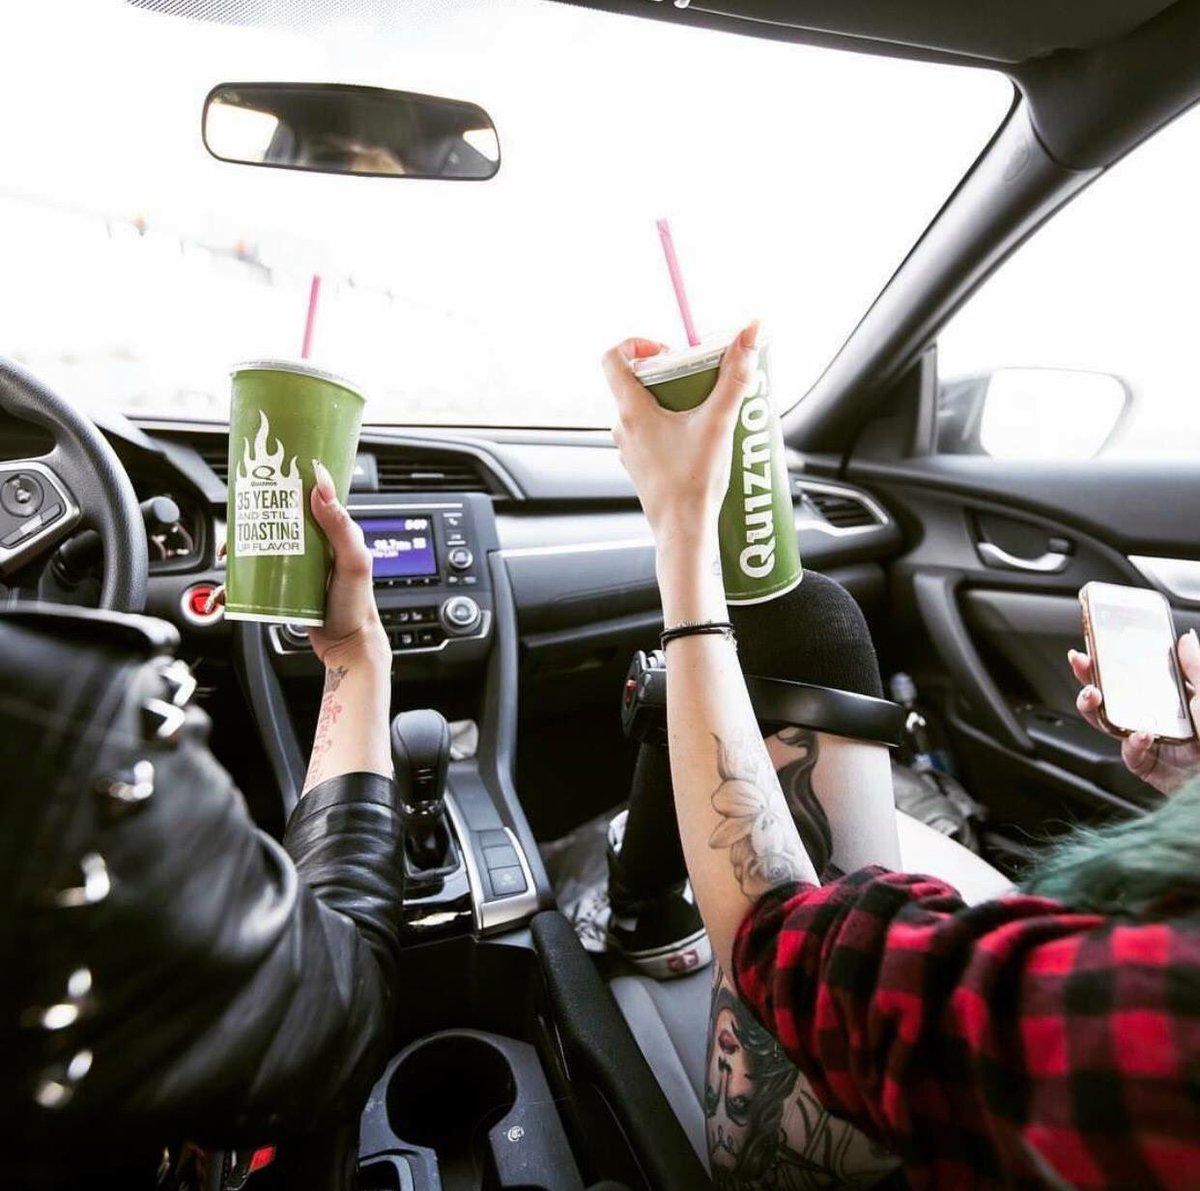 Cruising through hump day with @quiznos & GOLO! Place your order through our app for a quick pick-up at the St-Jacques location #GOLOCAL https://t.co/YPArlTLgih